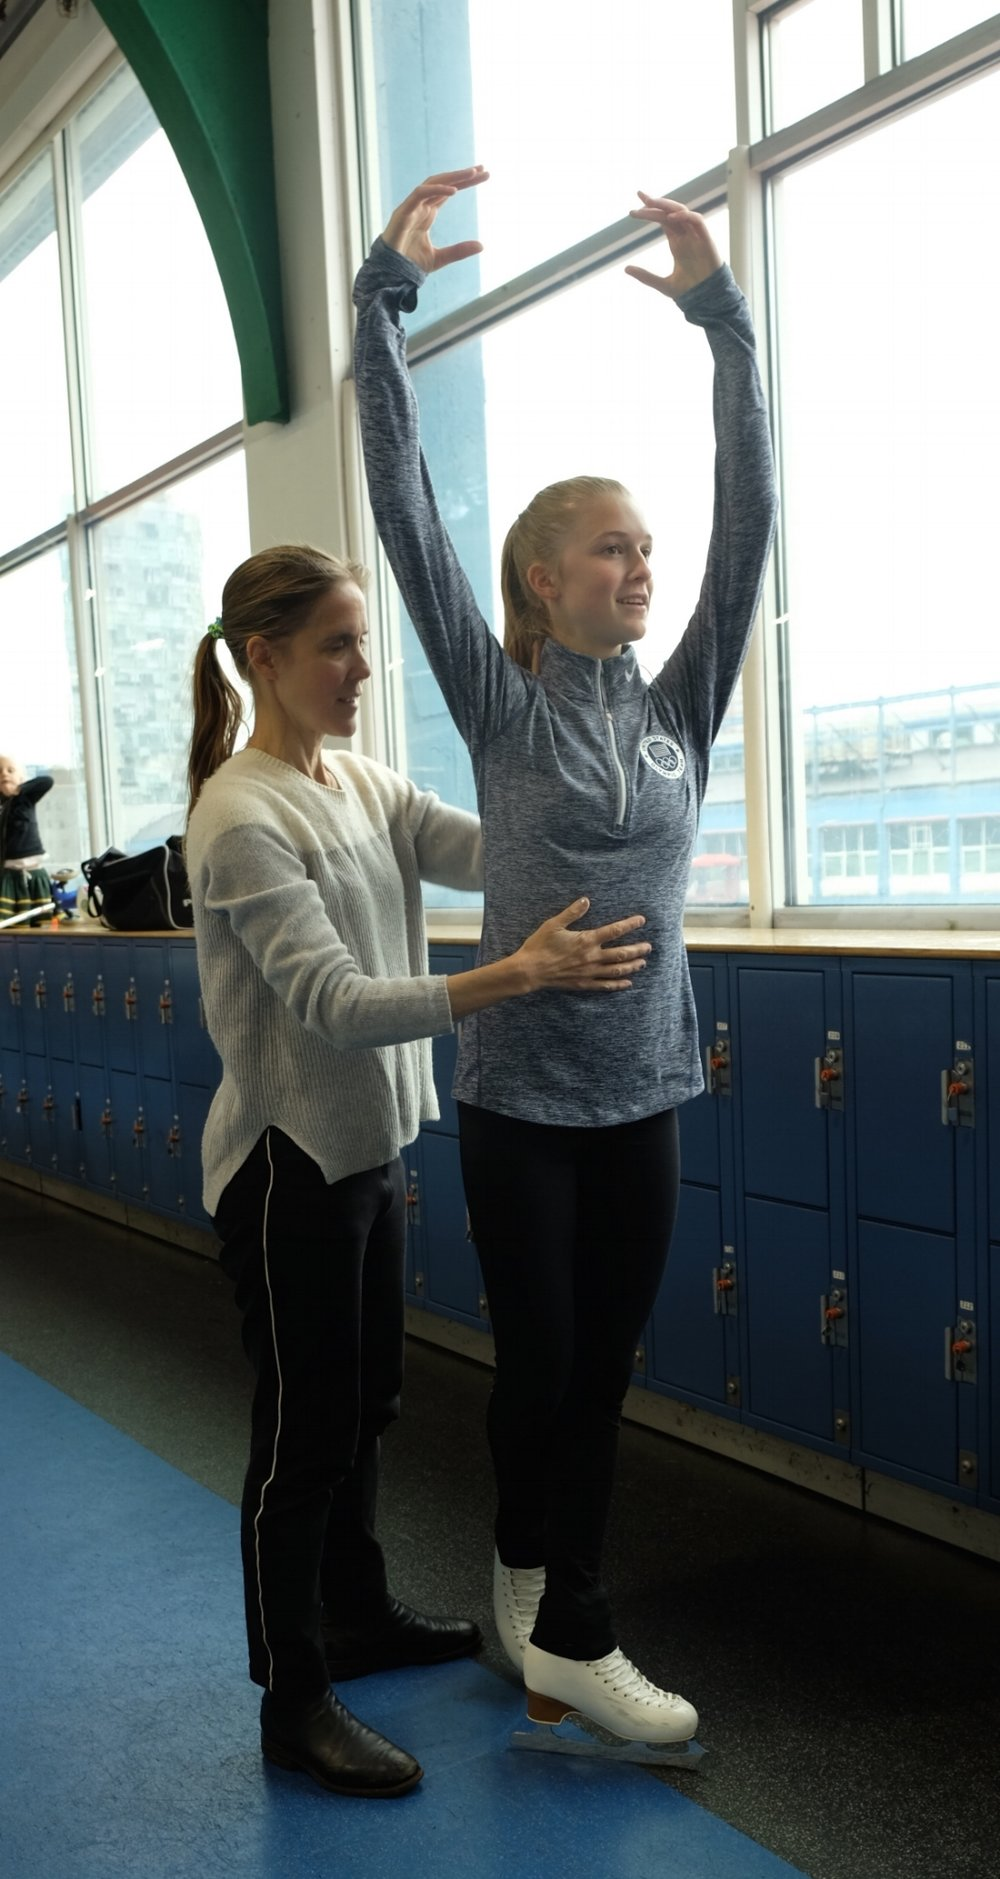 Balance, Posture, Coordination, Balance - Change your movement habits to become healthier and more efficient.Learn balance and coordination by combining classic elements of Alexander Technique with simple movements from daily life.Benefit from a unique approach taught by a professional dancer, choreographer and improviser.Chelsea Piers Sky Rink, 2017